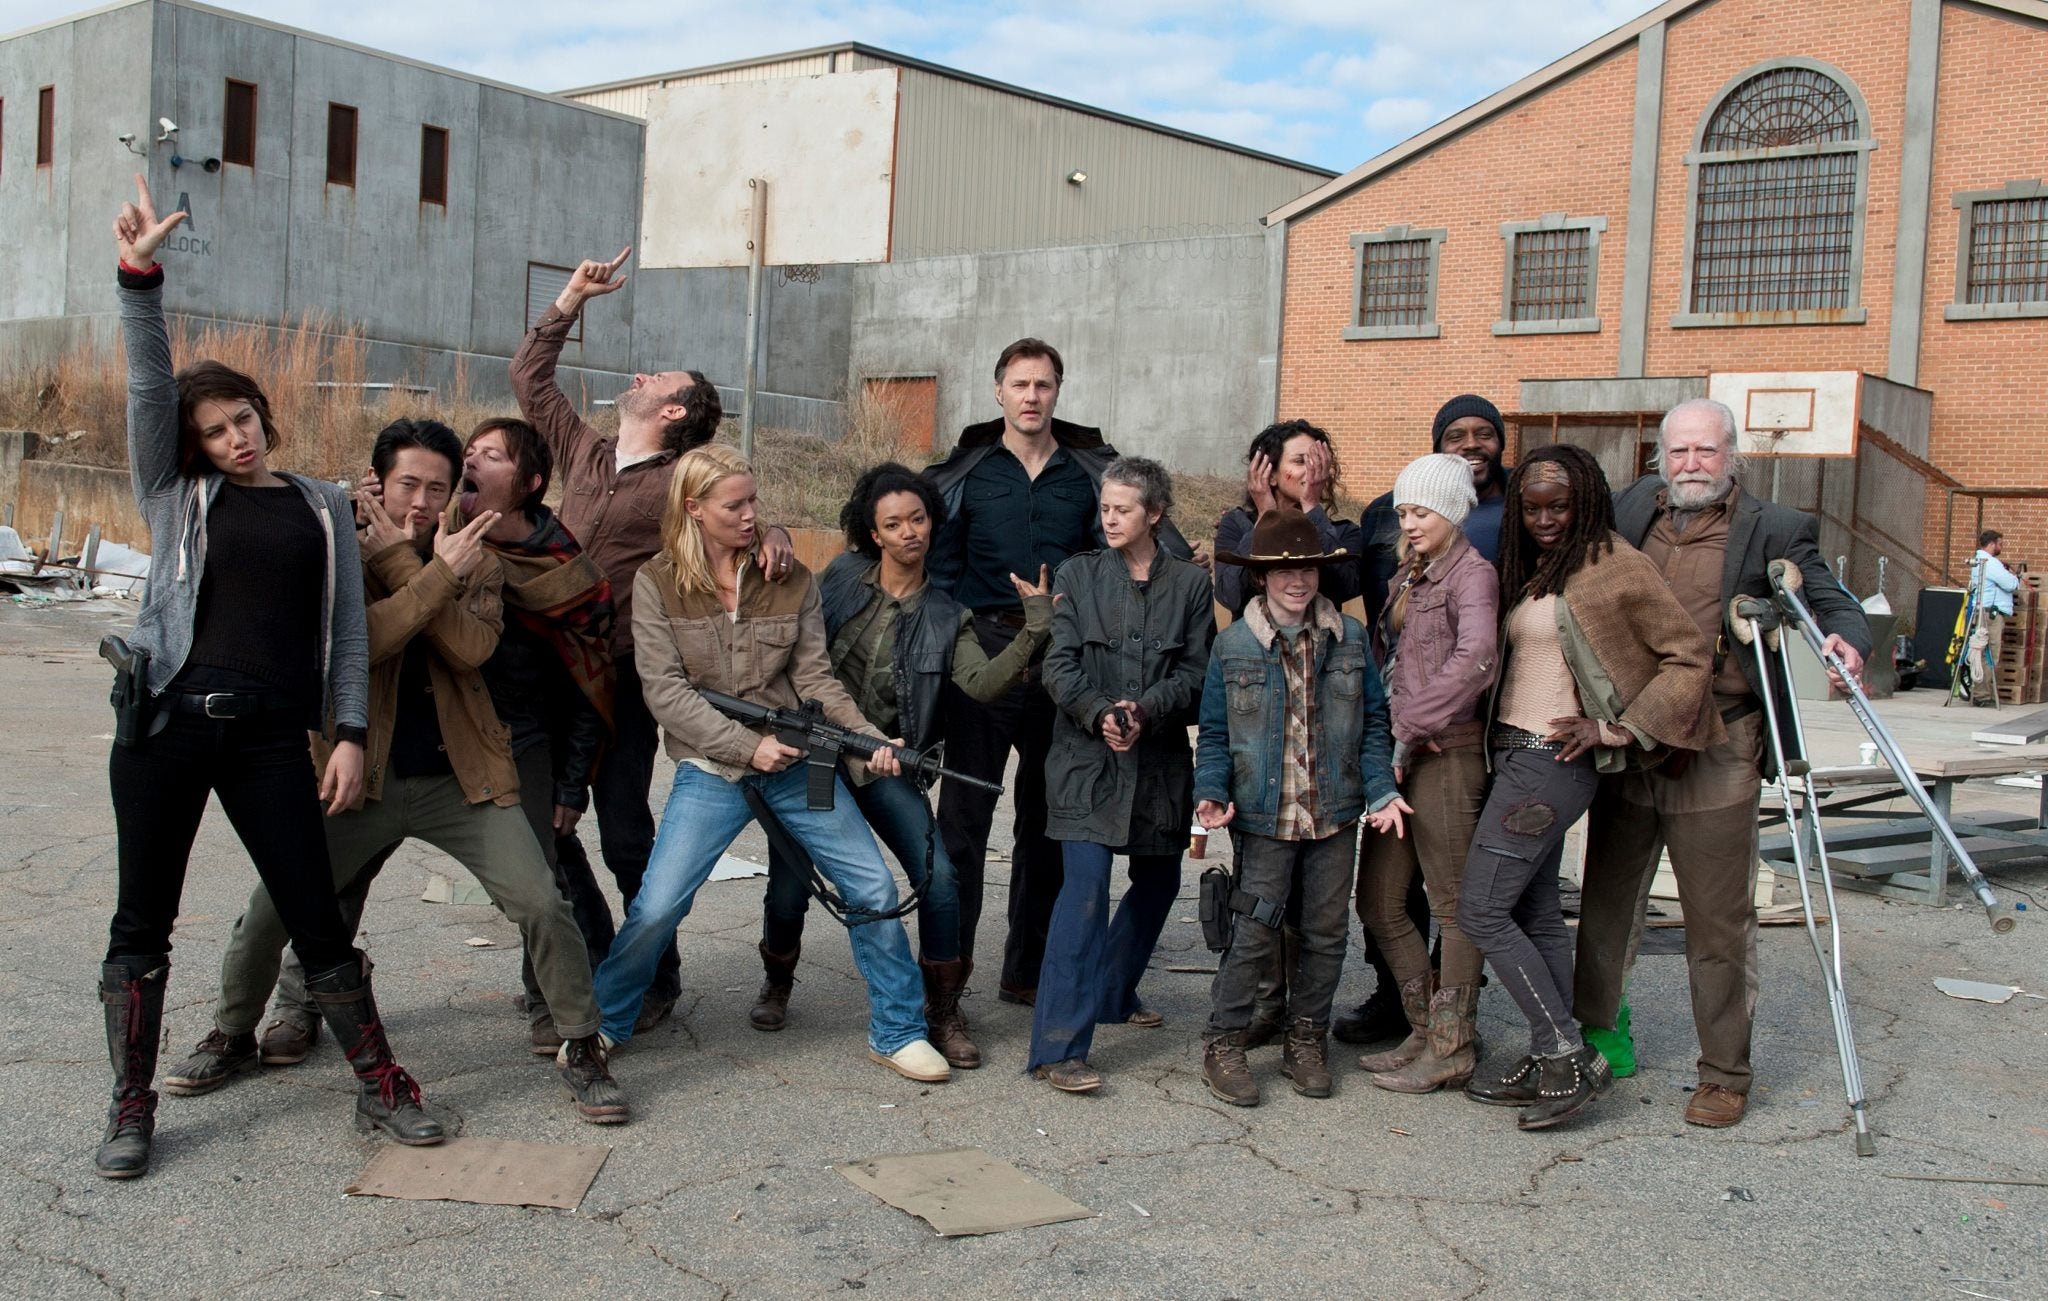 The Walking Dead, Talking Dead Ratings at All-Time High in Finales